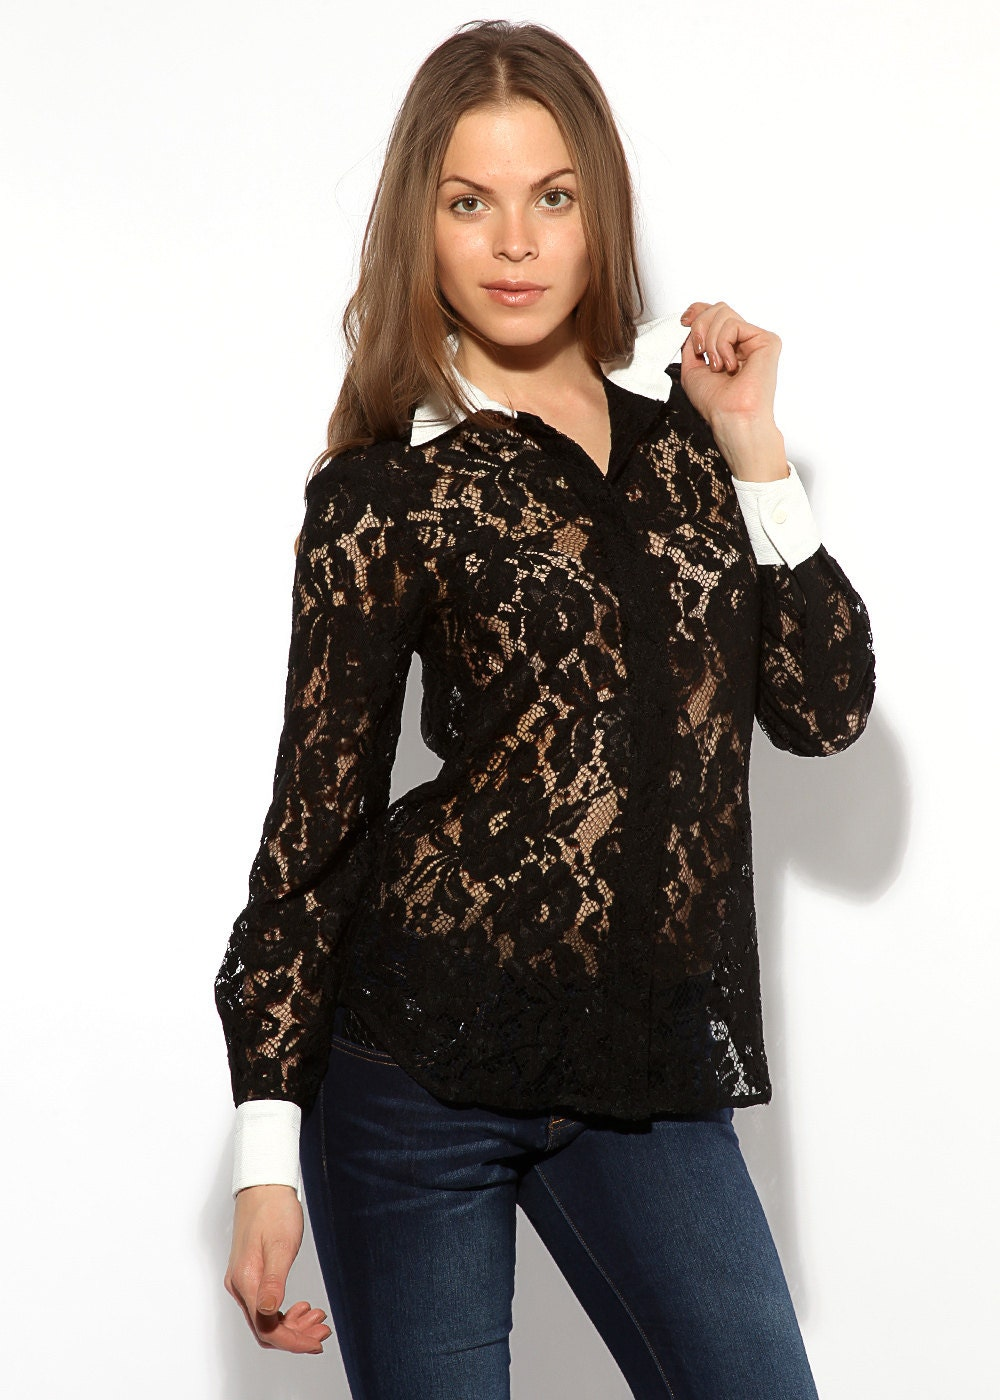 Black lace blouse with white collar Long by AliceBerryFashion